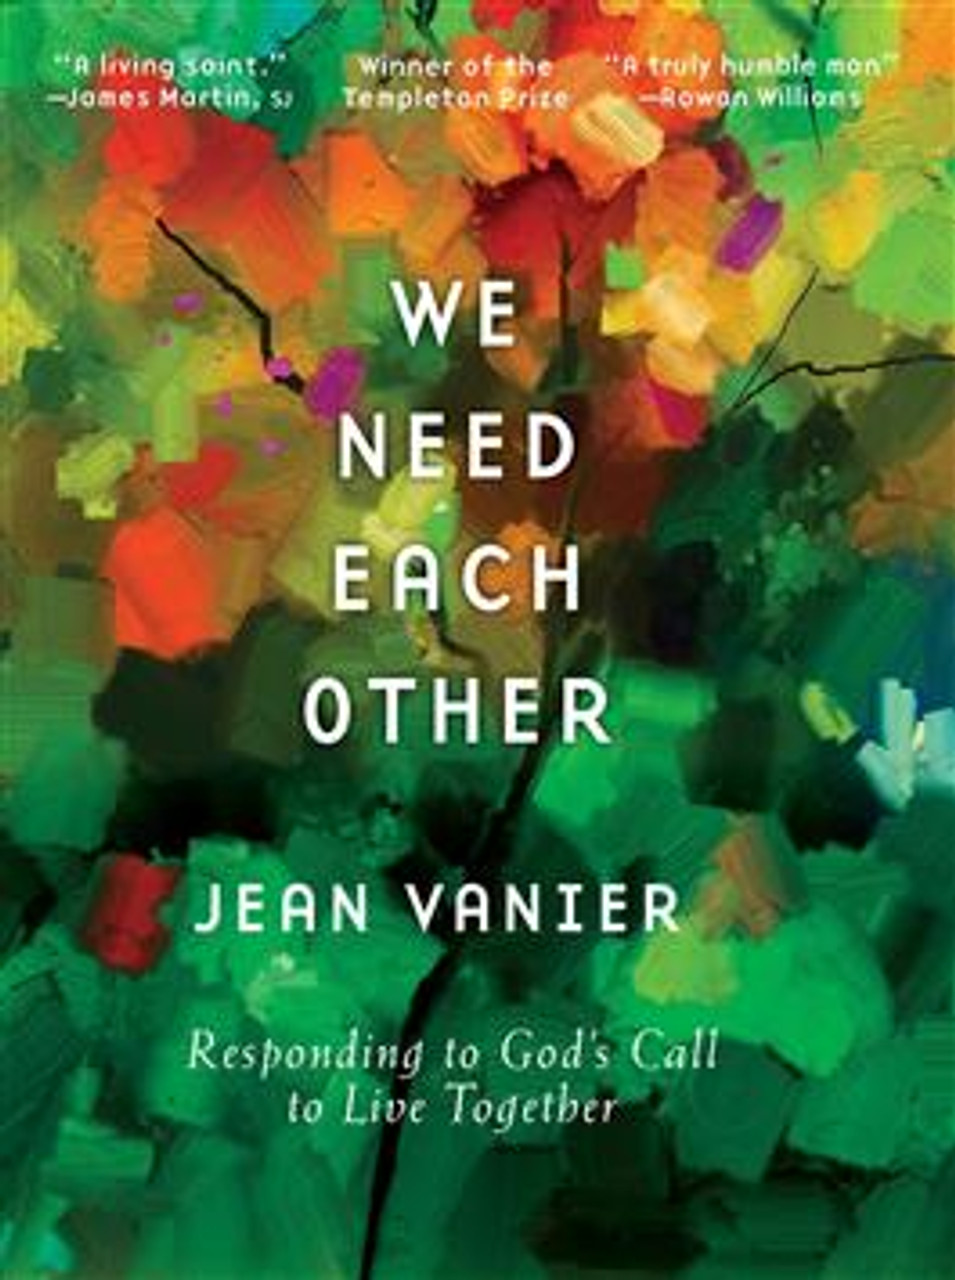 We Need Each Other Responding to God's Call to Live Together